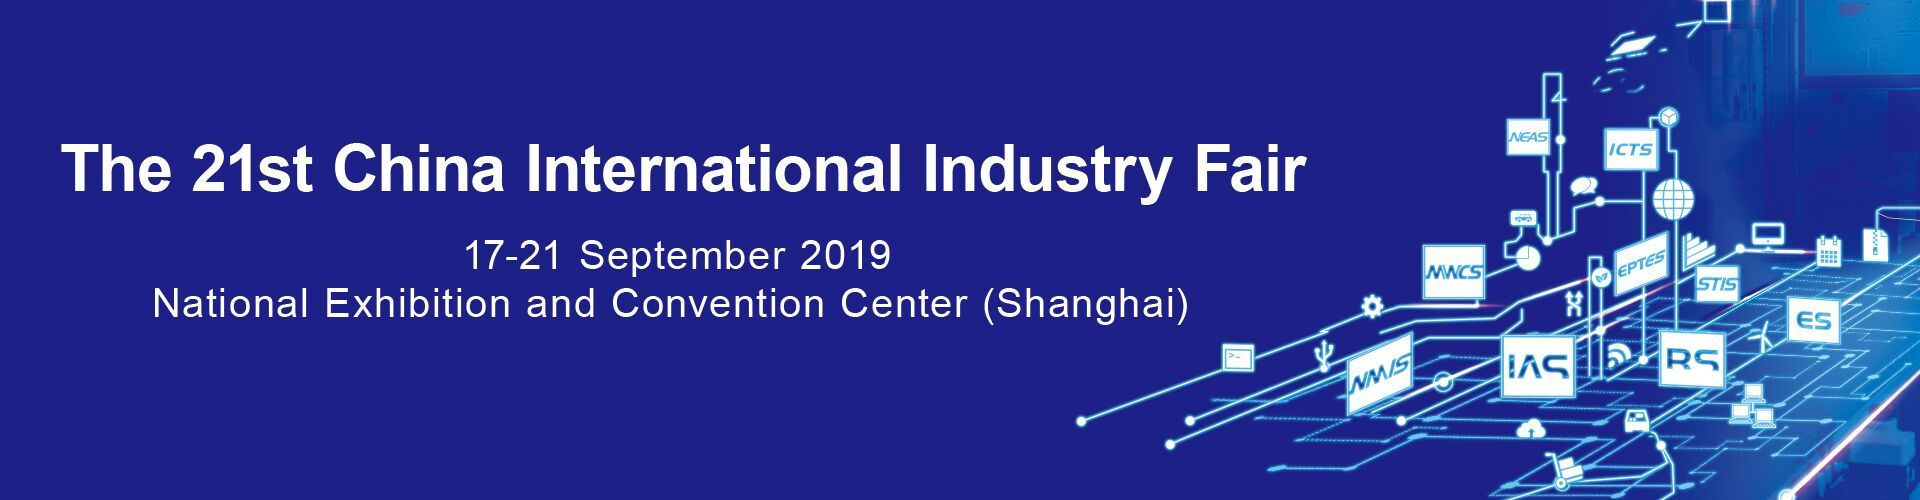 China International Industry Fair 2019 | KINSUN News and